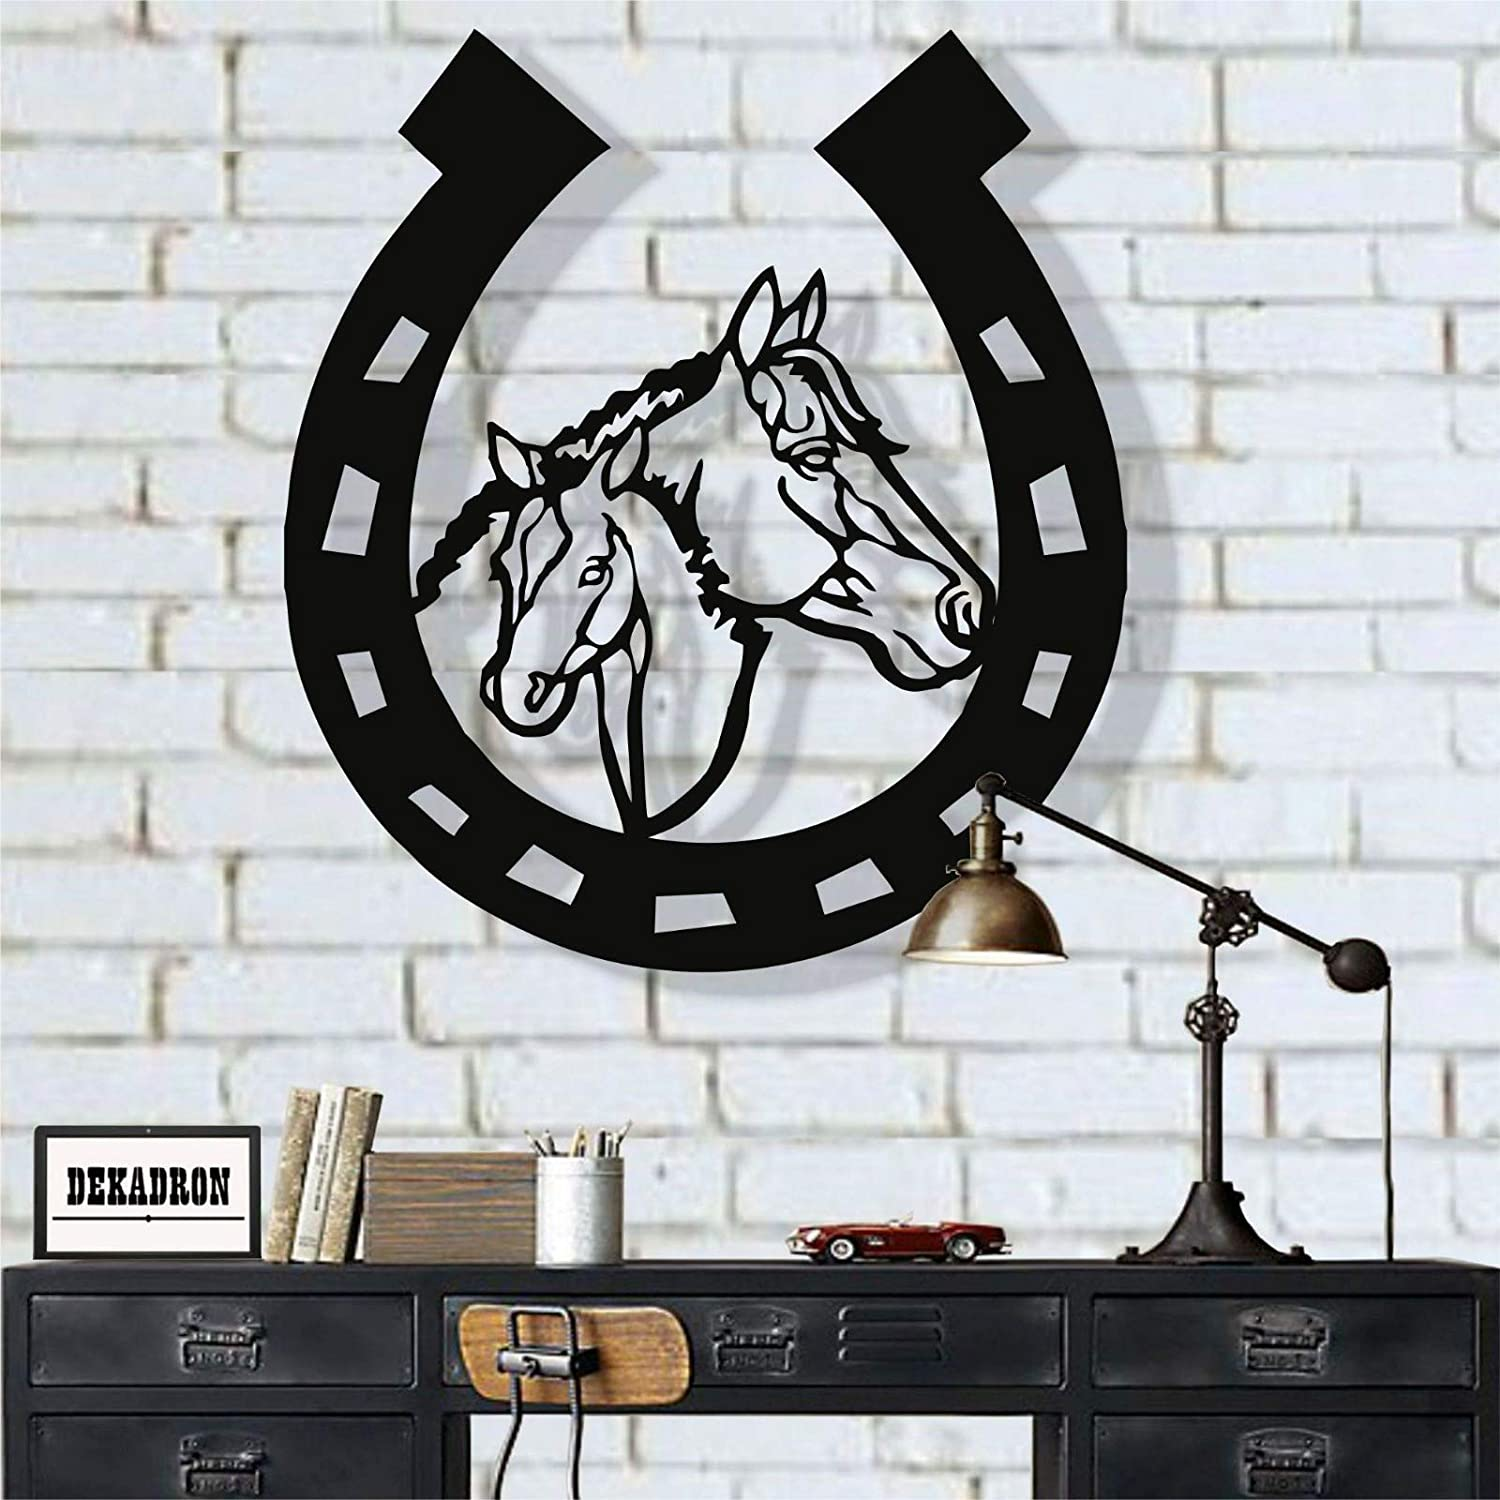 "Metal Wall Art, Metal Horse Head Horseshoe Art, Metal Wall Decor, Cowboy art, Farmhouse Art, Cowboy Decor, Horseshoe Sign (15""W x 18""H / 38x45 cm)"